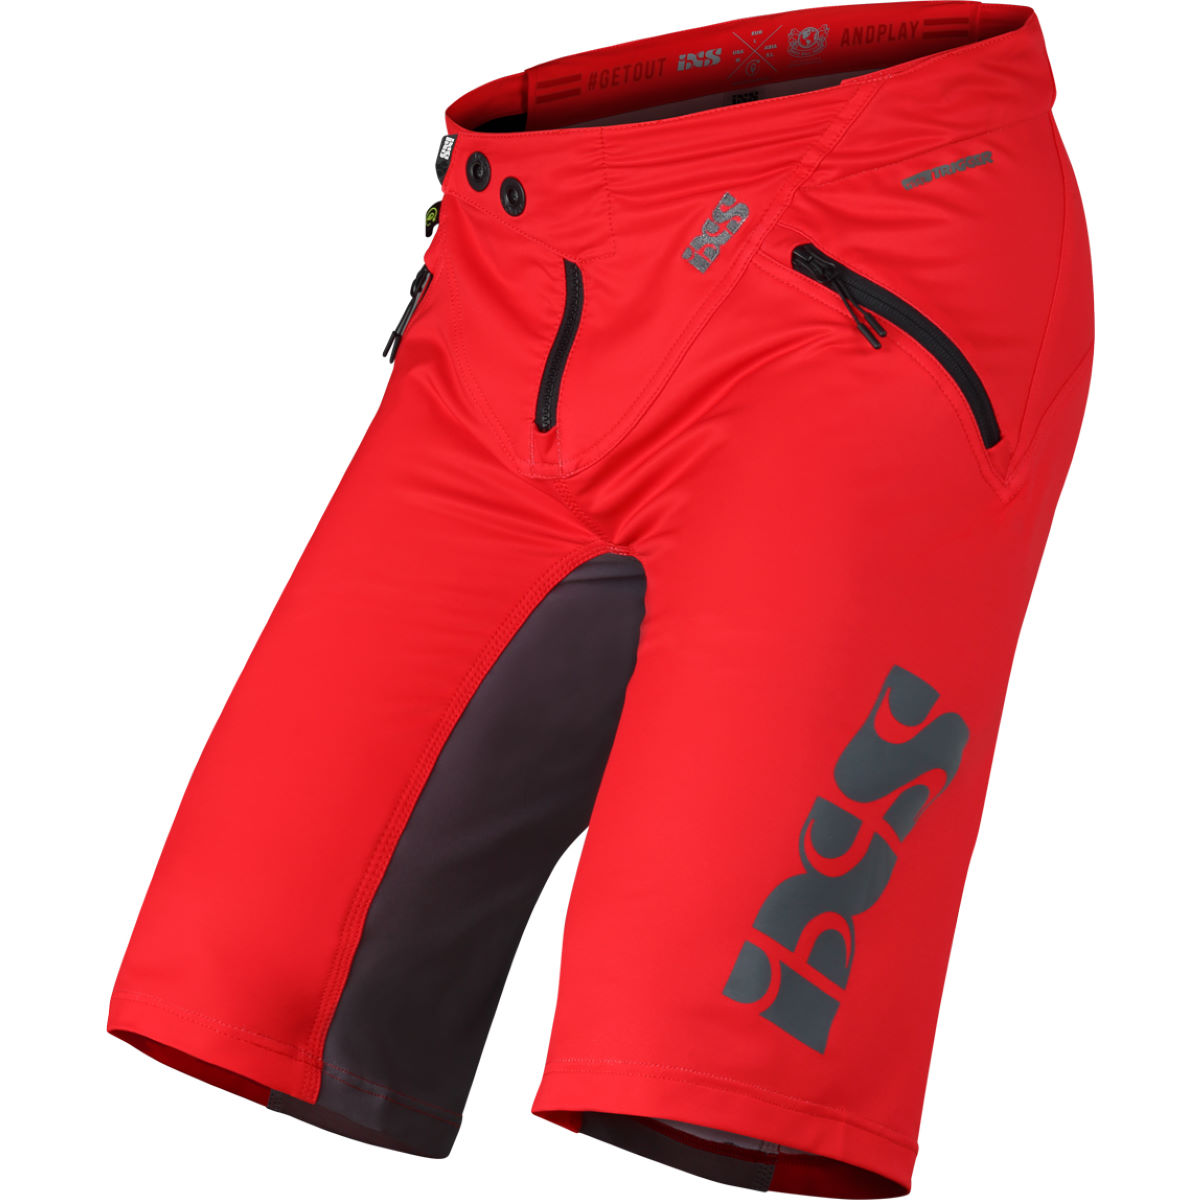 Ixs Trigger Shorts - M Red-graphite  Baggy Shorts